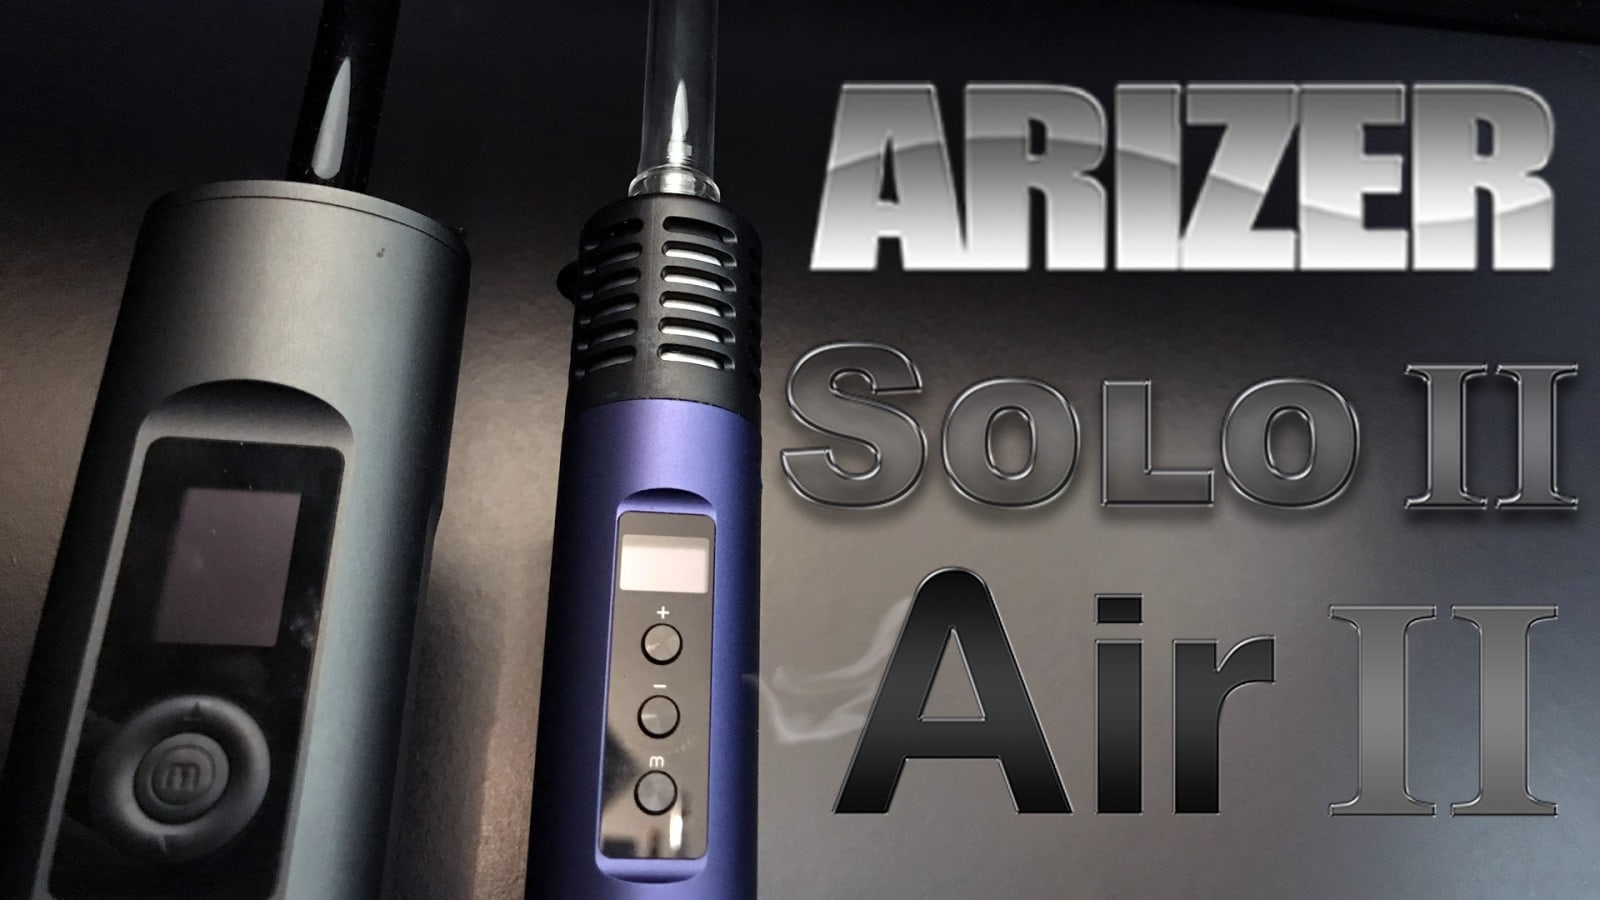 Arizer Air 2 / Solo 2 Review Video – BANNED BY YOUTUBE